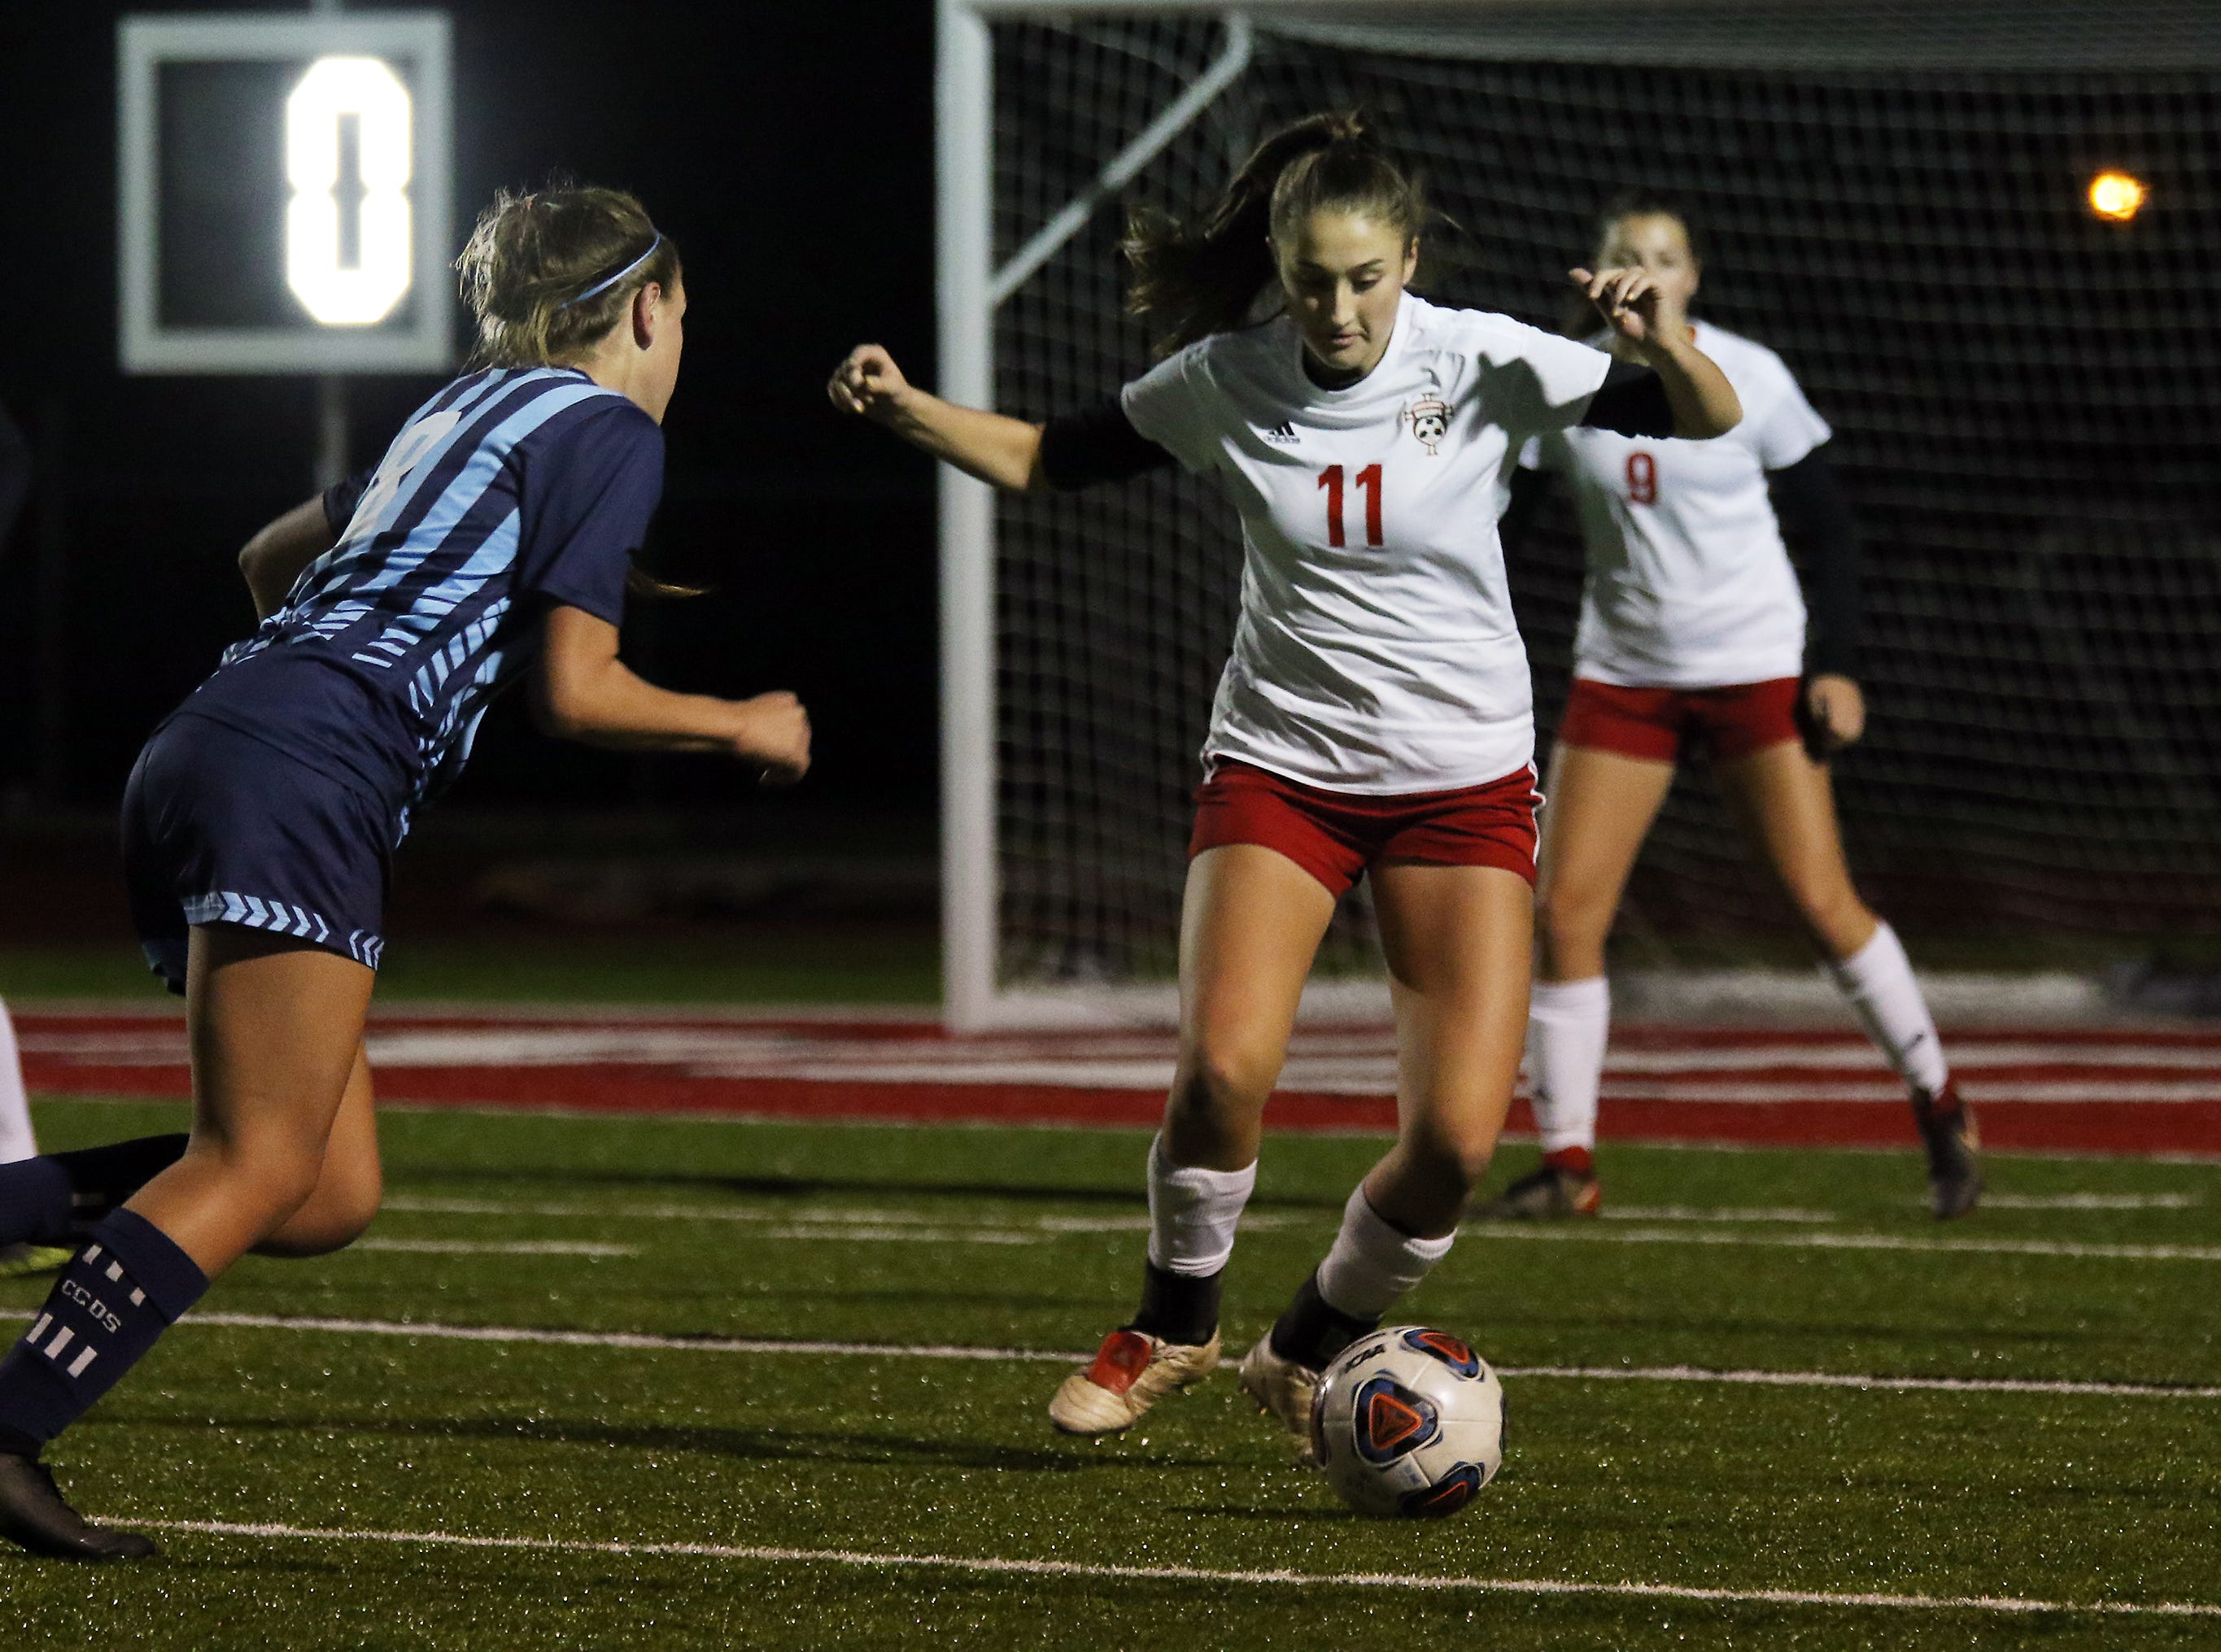 Rosecrans' Korynn Porter looks to control the ball against CCD in the Division III state semifinals at London High School on Tuesday.